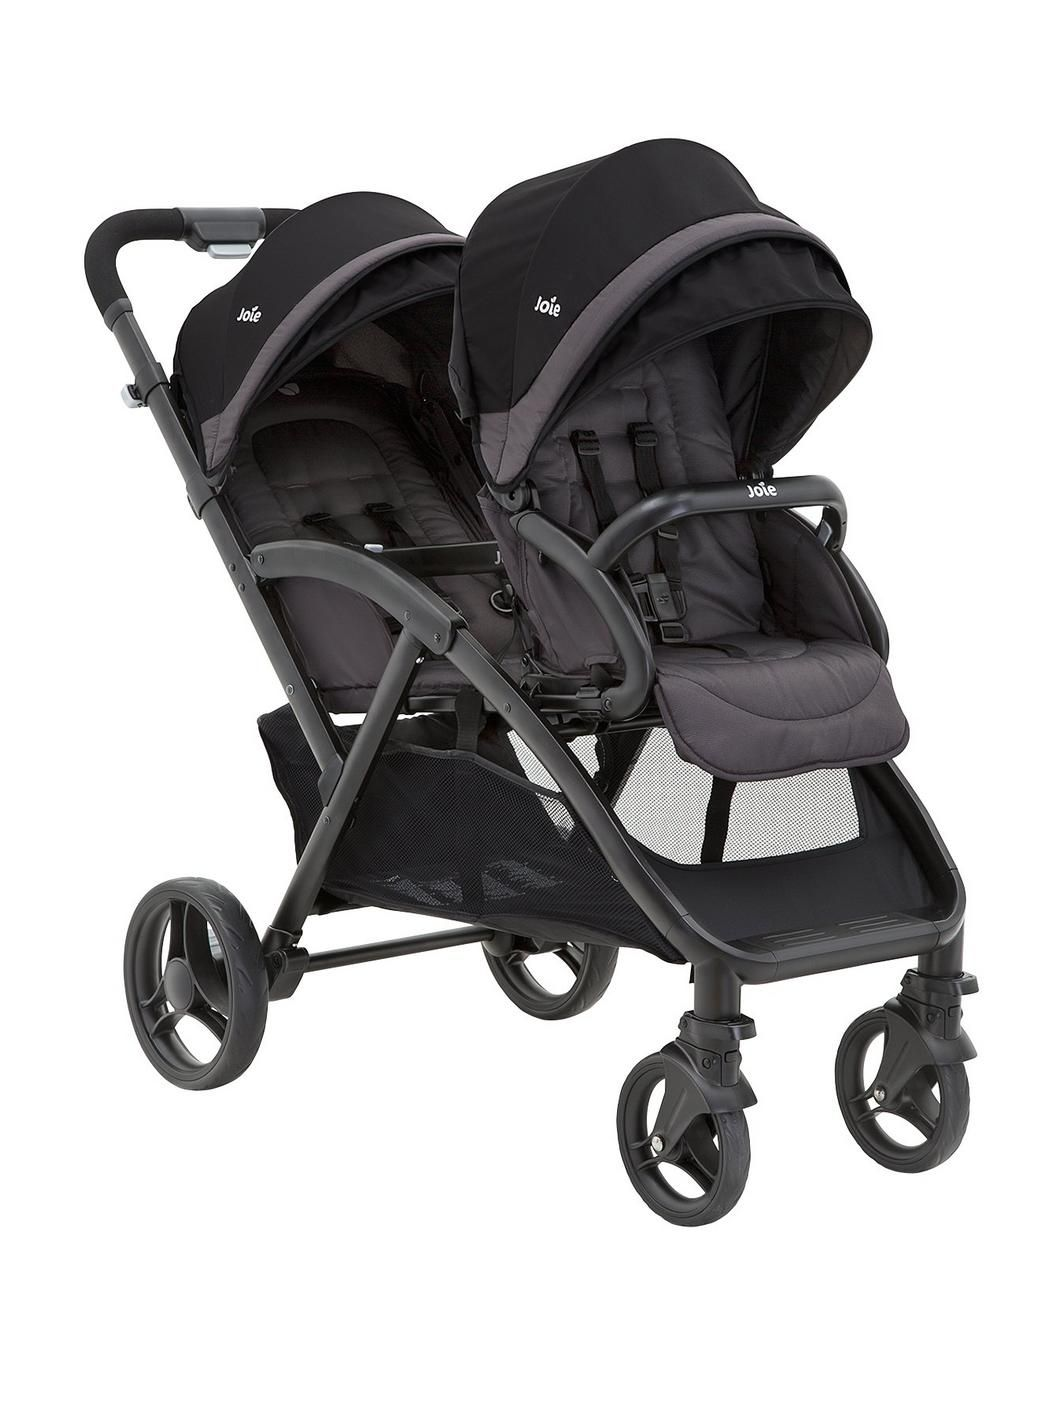 Double Buggies Smyths Find That Twin Stroller For A Comfortable Walk In The Park